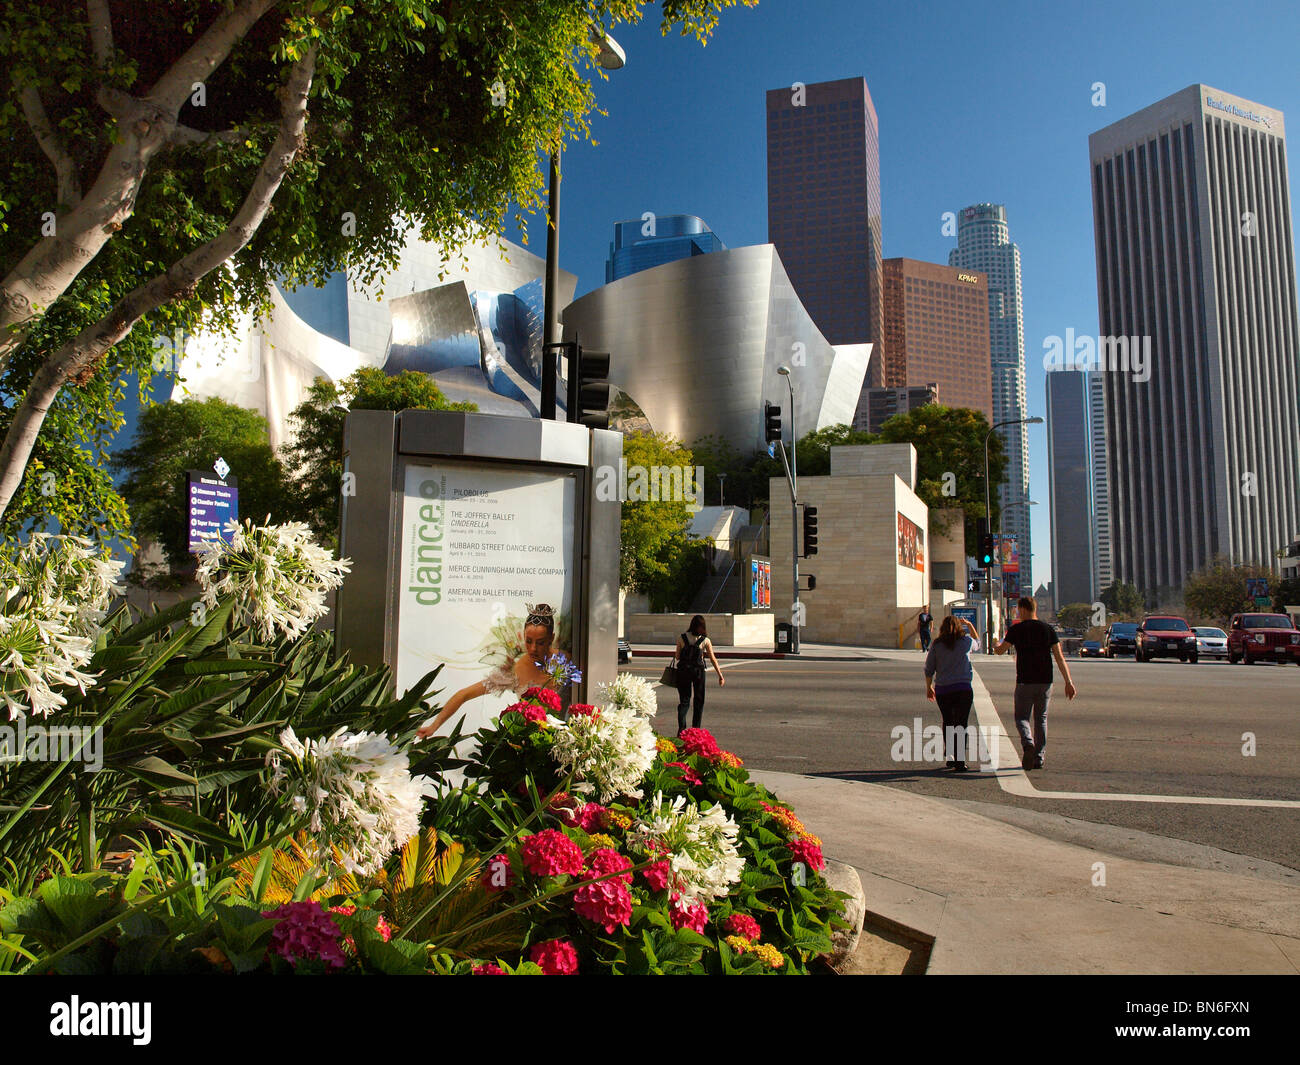 Downtown Los Angeles, California. Shinny building at left-center is part of Walt Disney Concert Hall - Stock Image